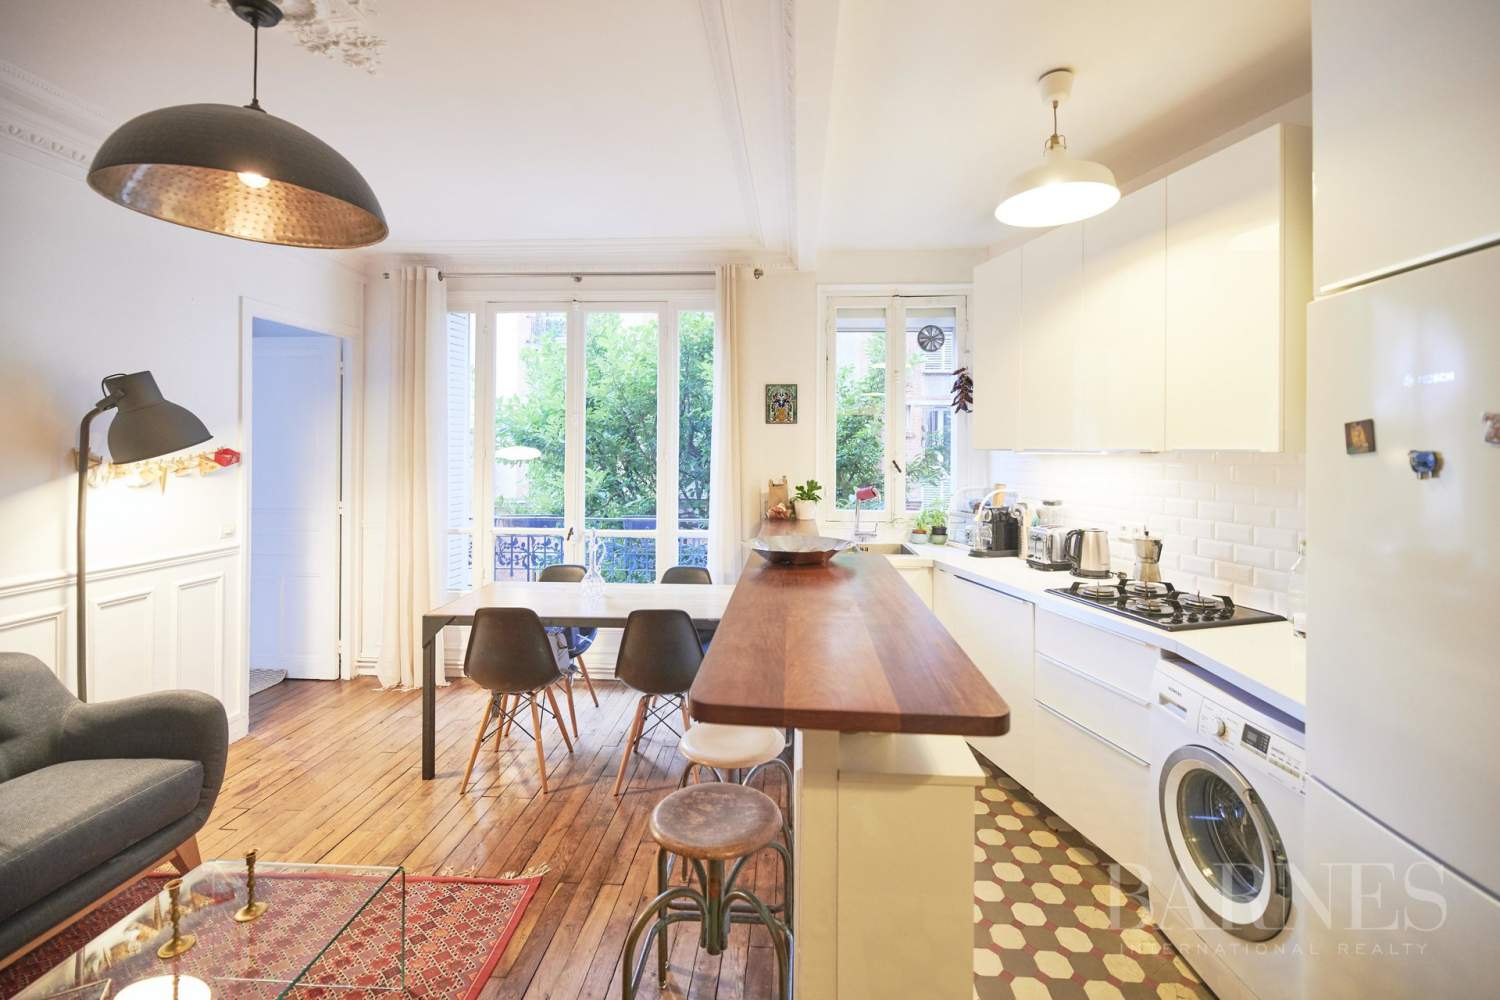 Barnes Boulogne Exclusive - Old apartment with charm - 2 bedrooms picture 4